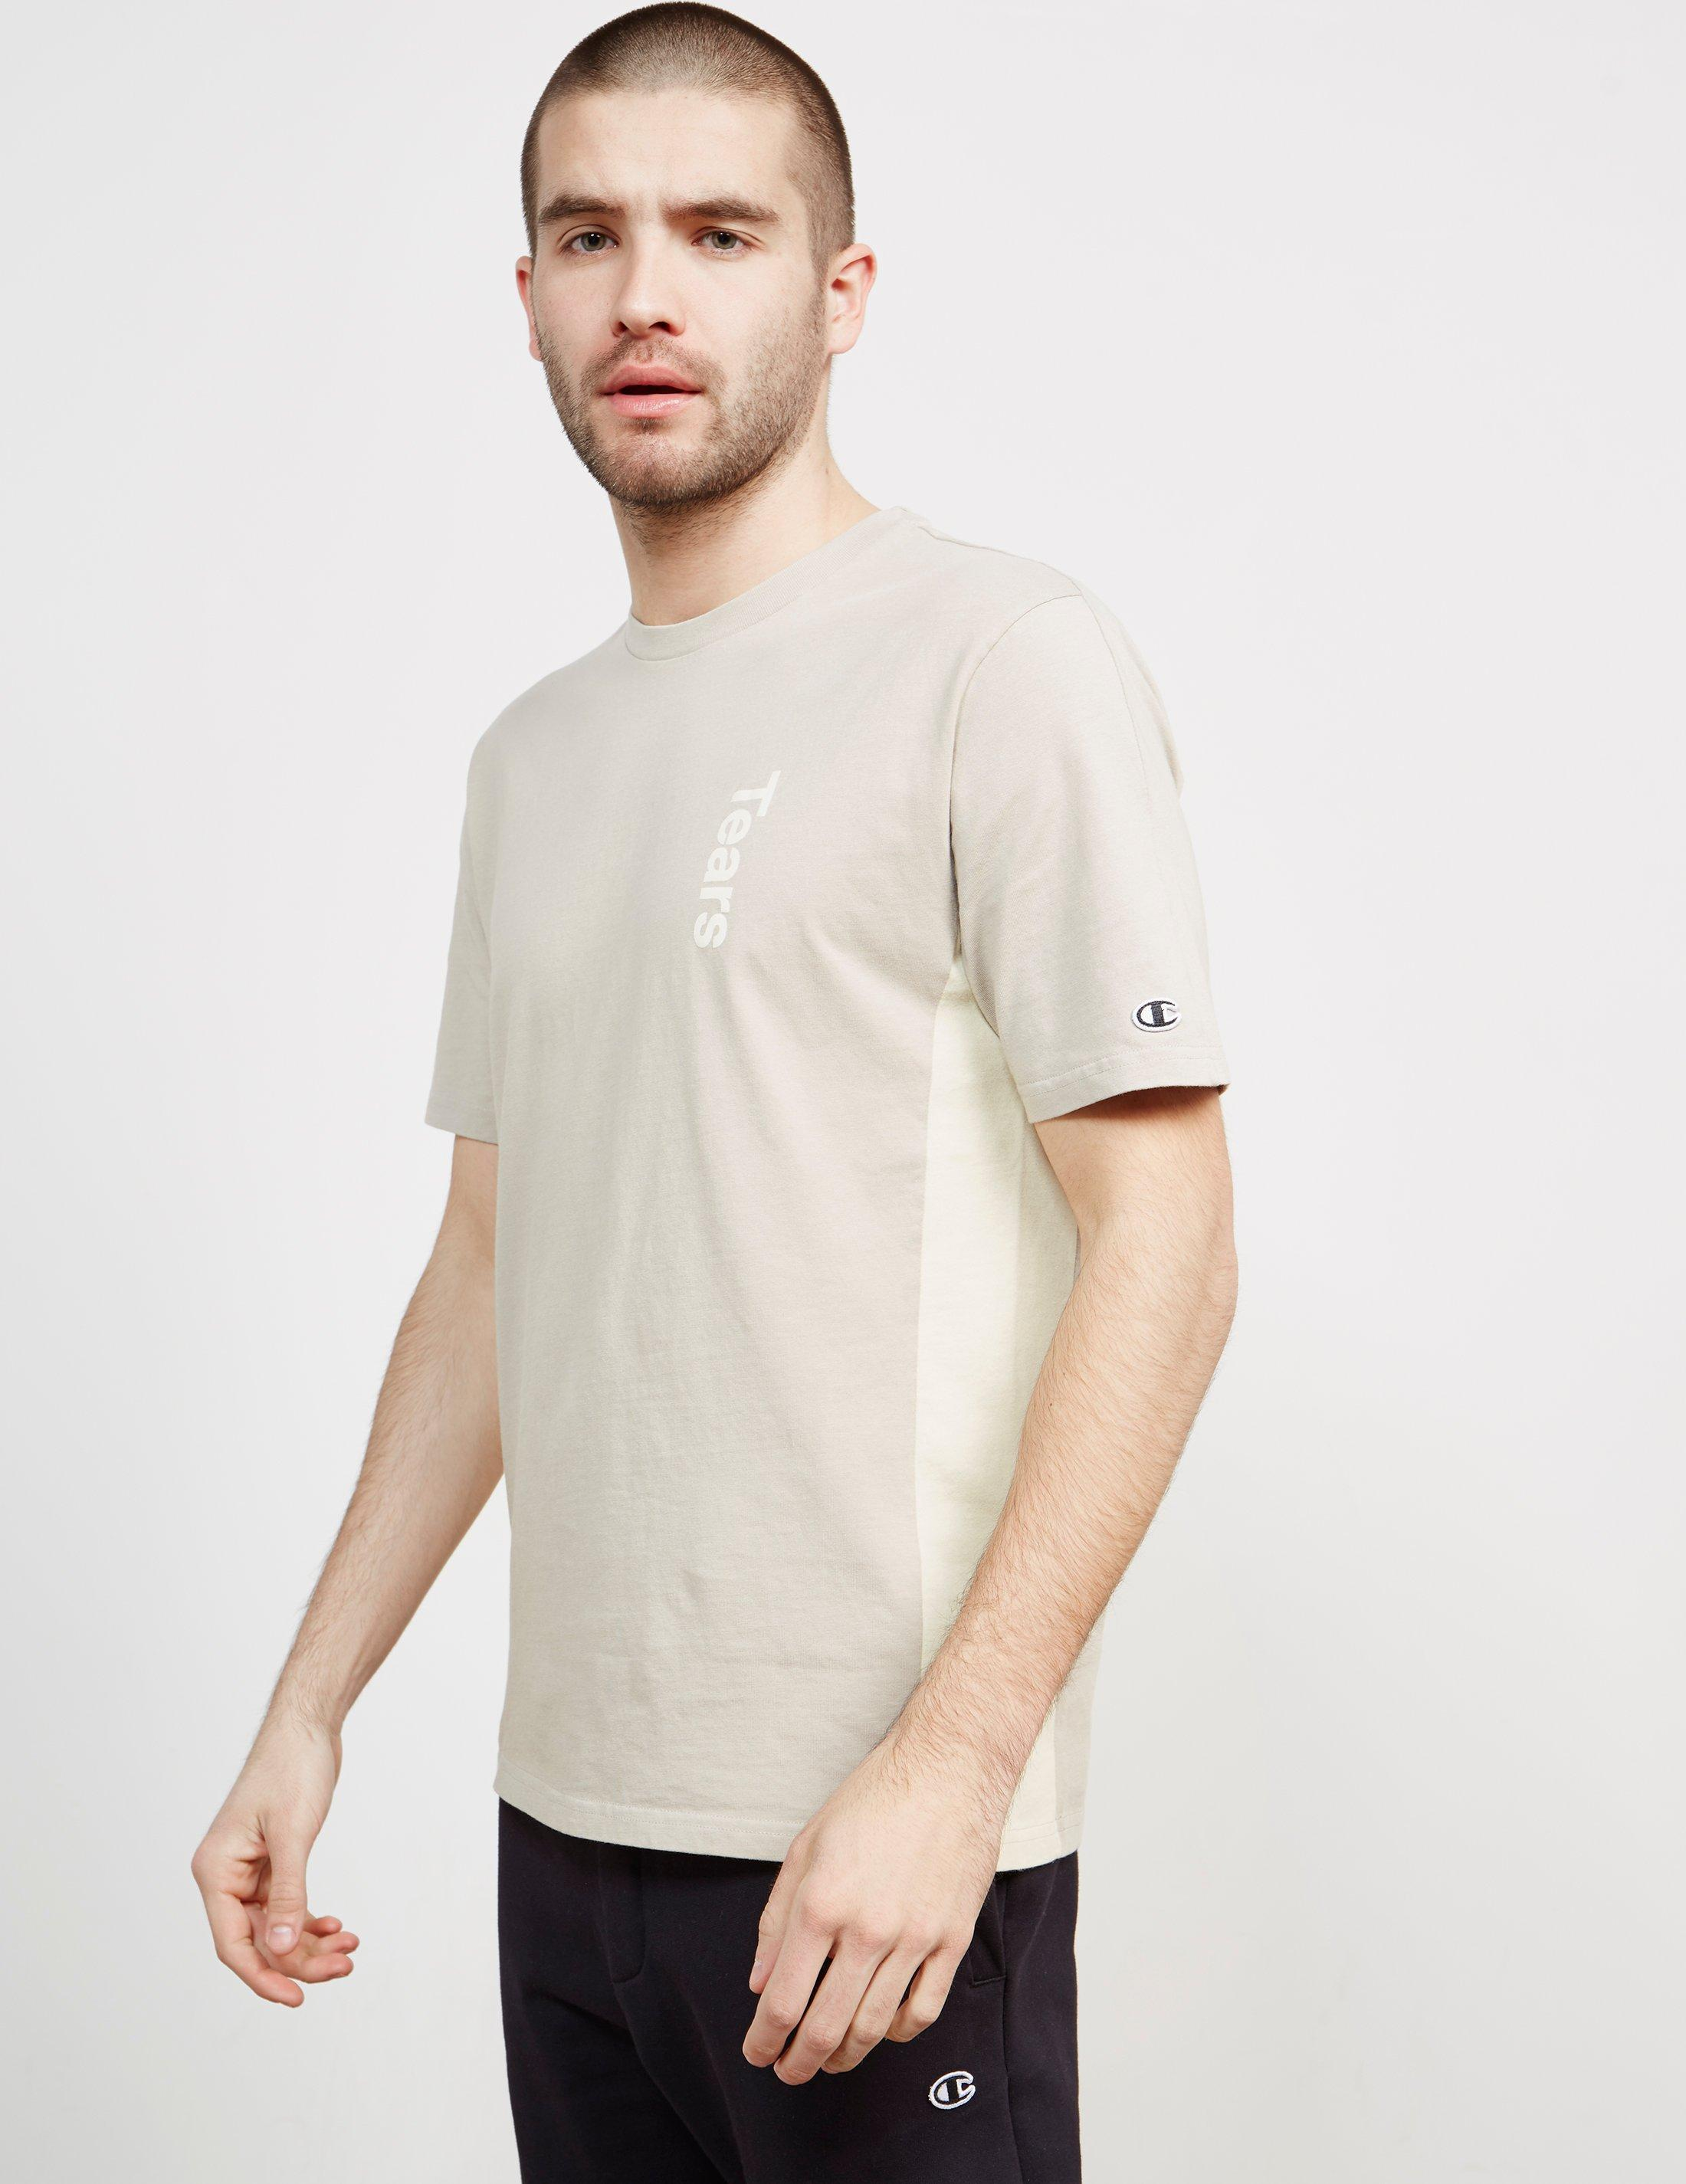 65165115d952 Champion Mens X Wood Wood Tears Short Sleeve T-shirt Taupe taupe for ...